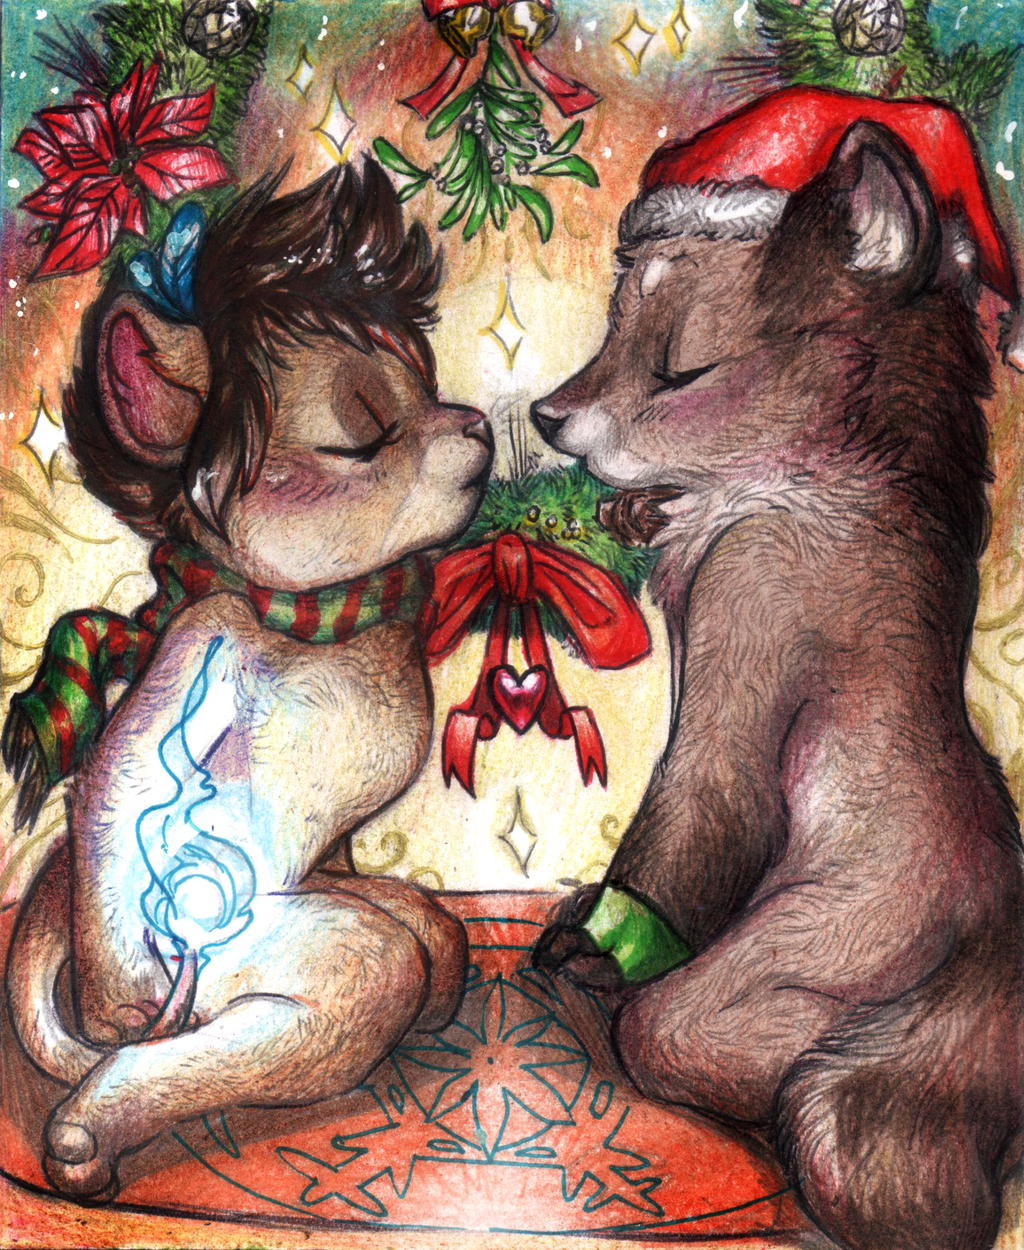 Most recent image: Commission - Under the mistletoe...